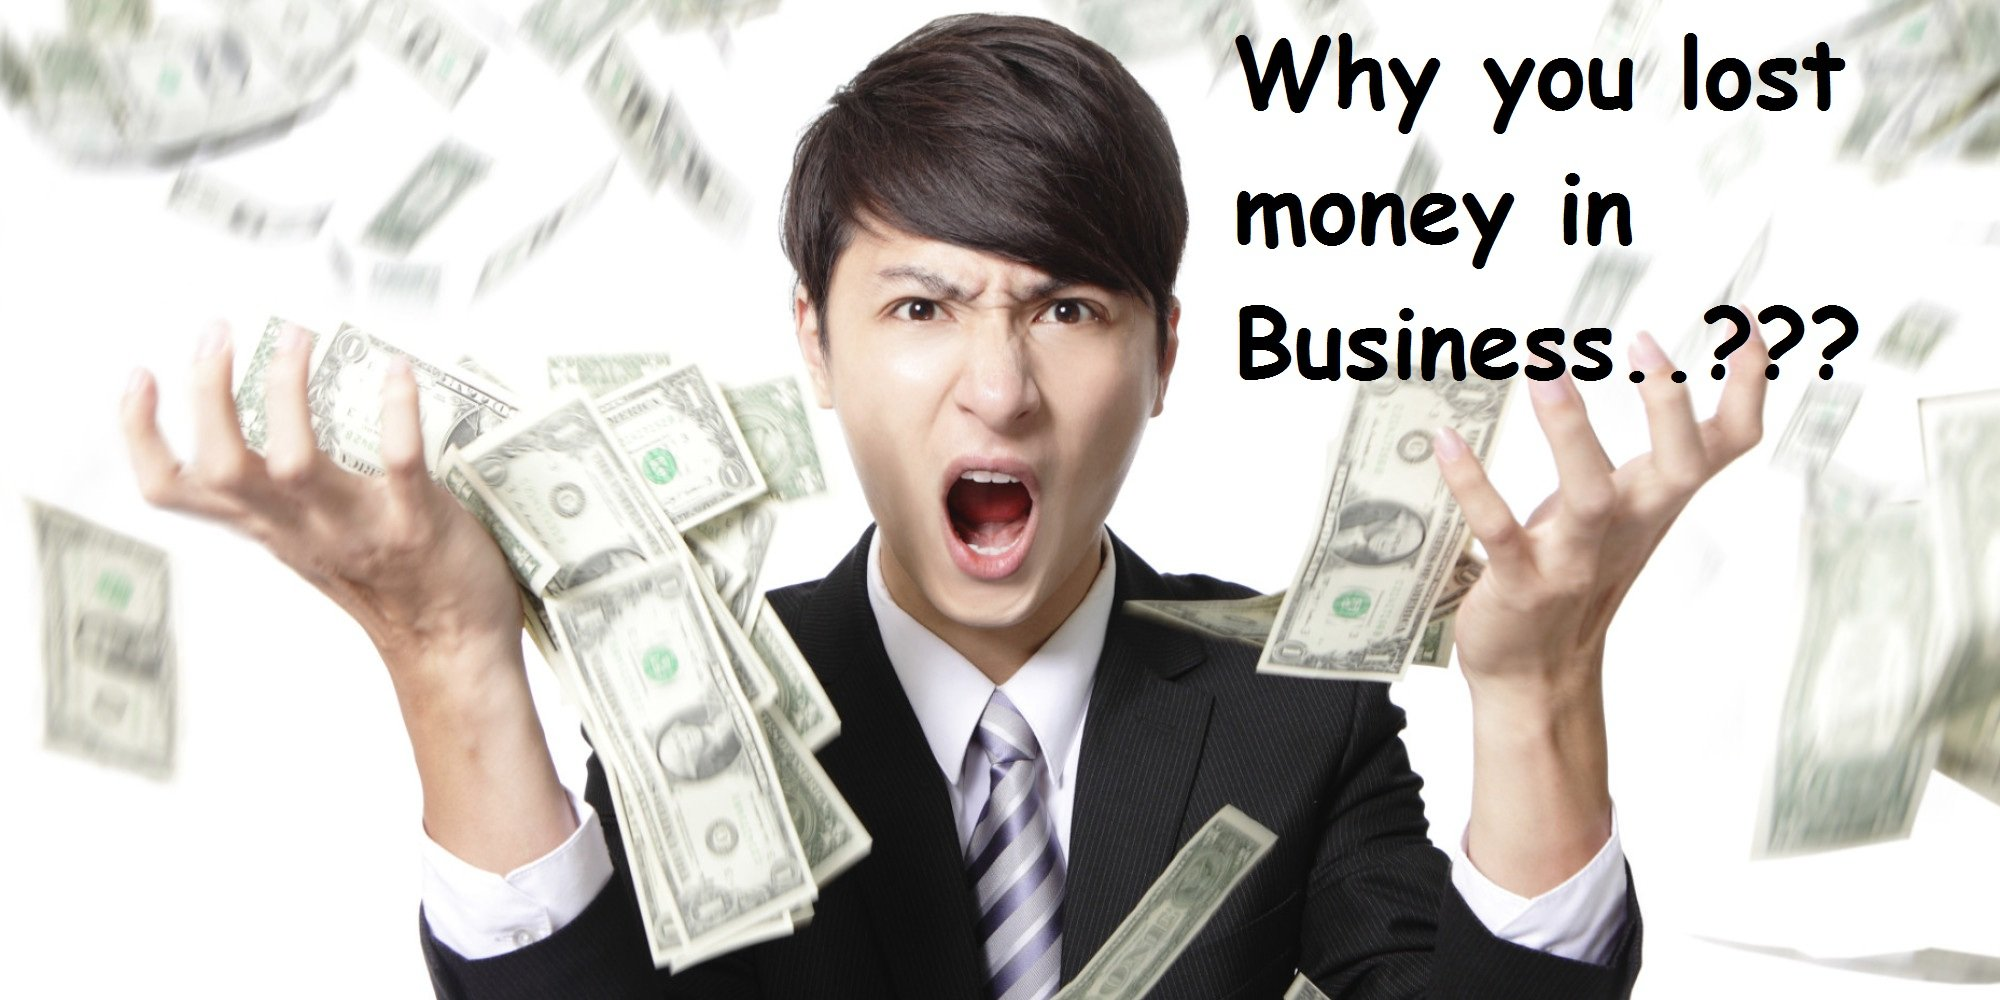 Why Are You Lost Money In Business..?? | Use Google Analytics Seo Tools And Whois